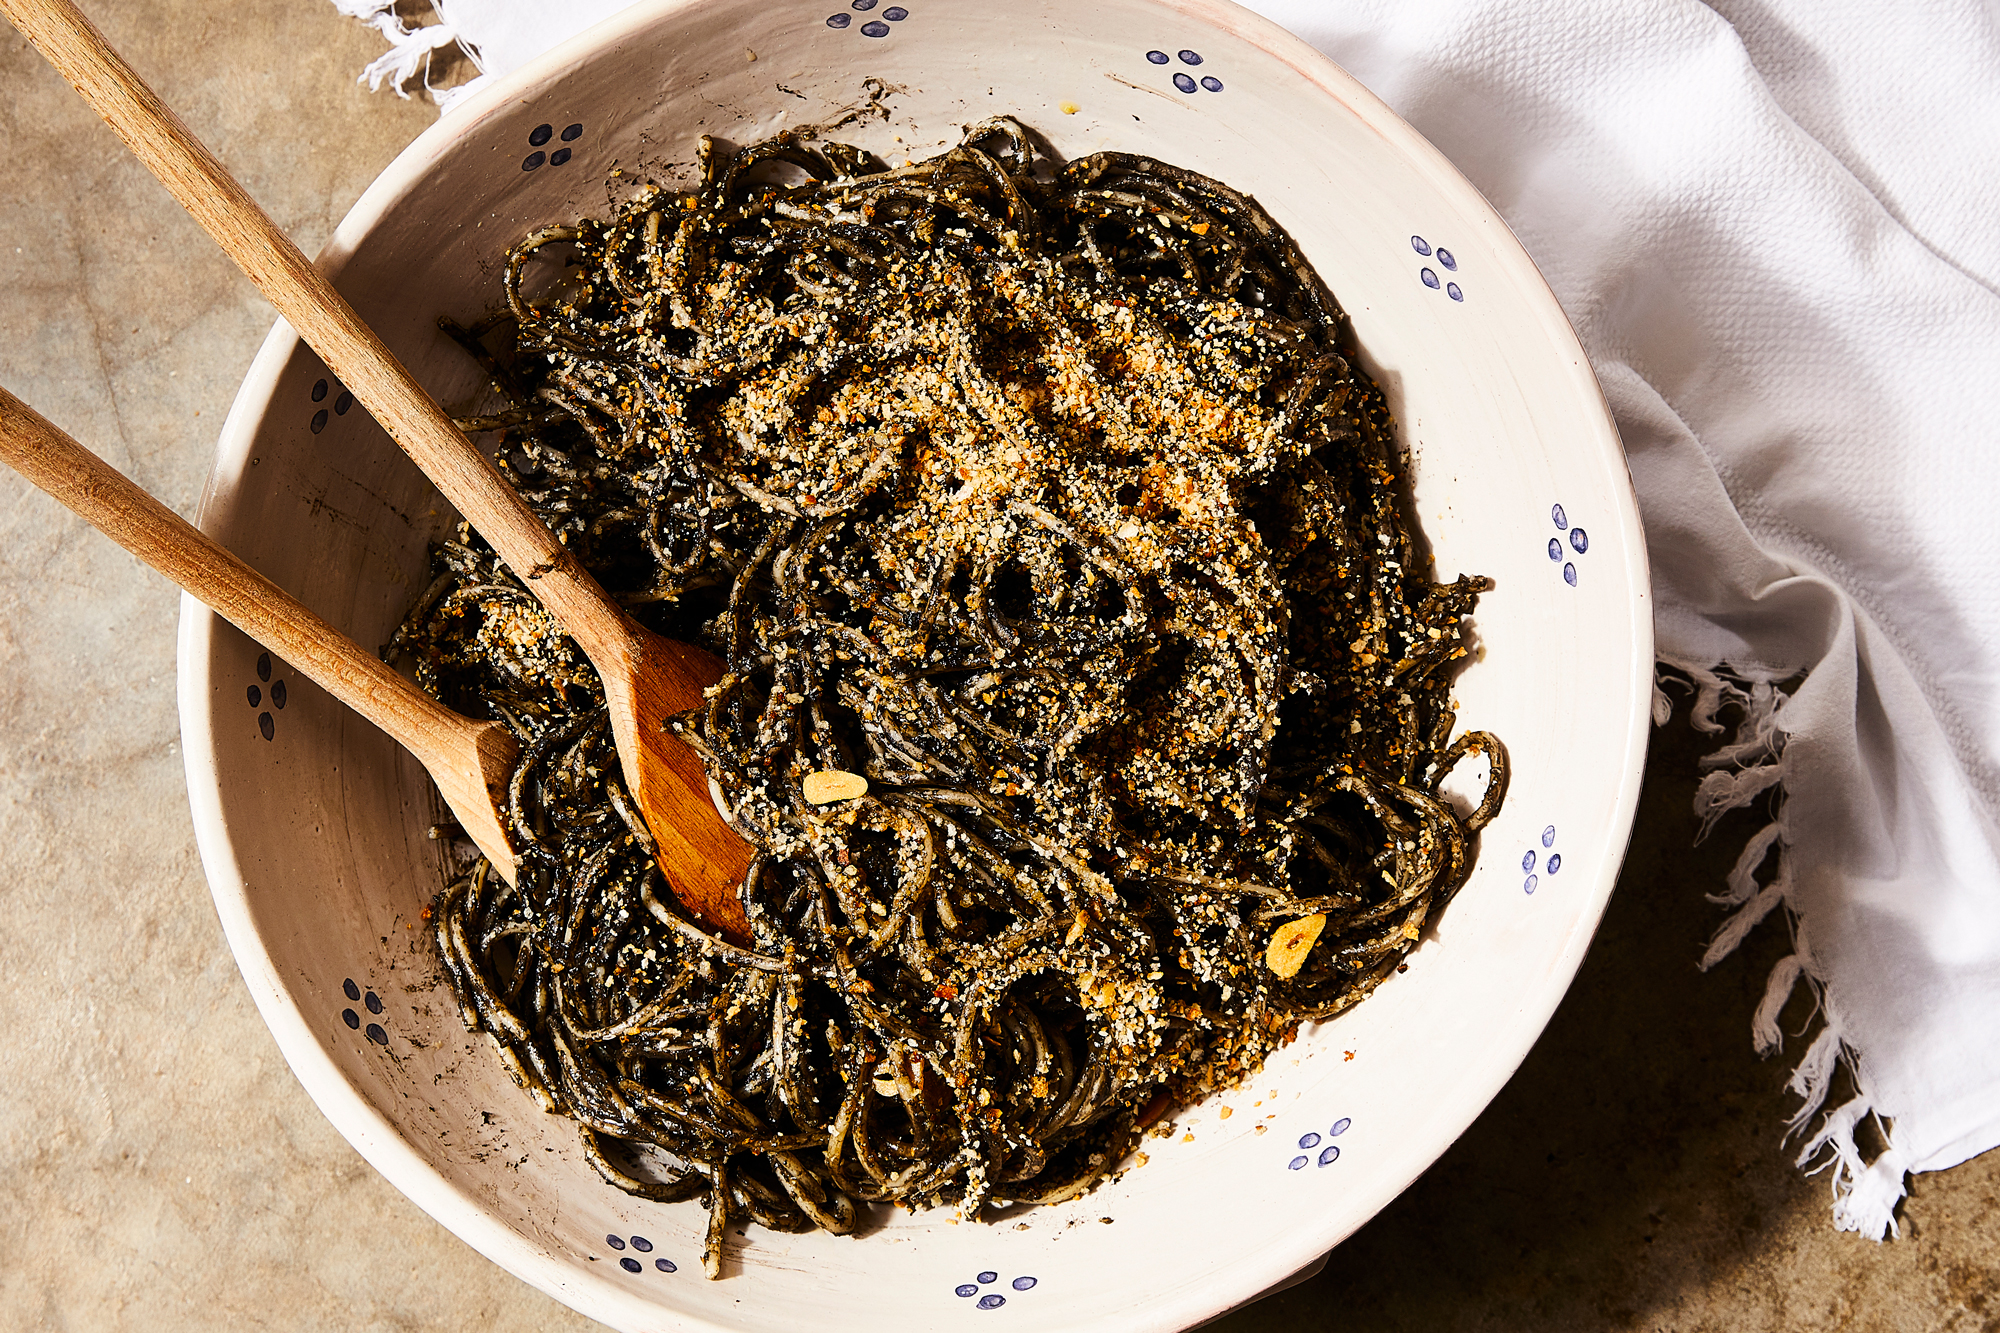 Spaghetti with Mussels, Squid Ink, and Breadcrumbs